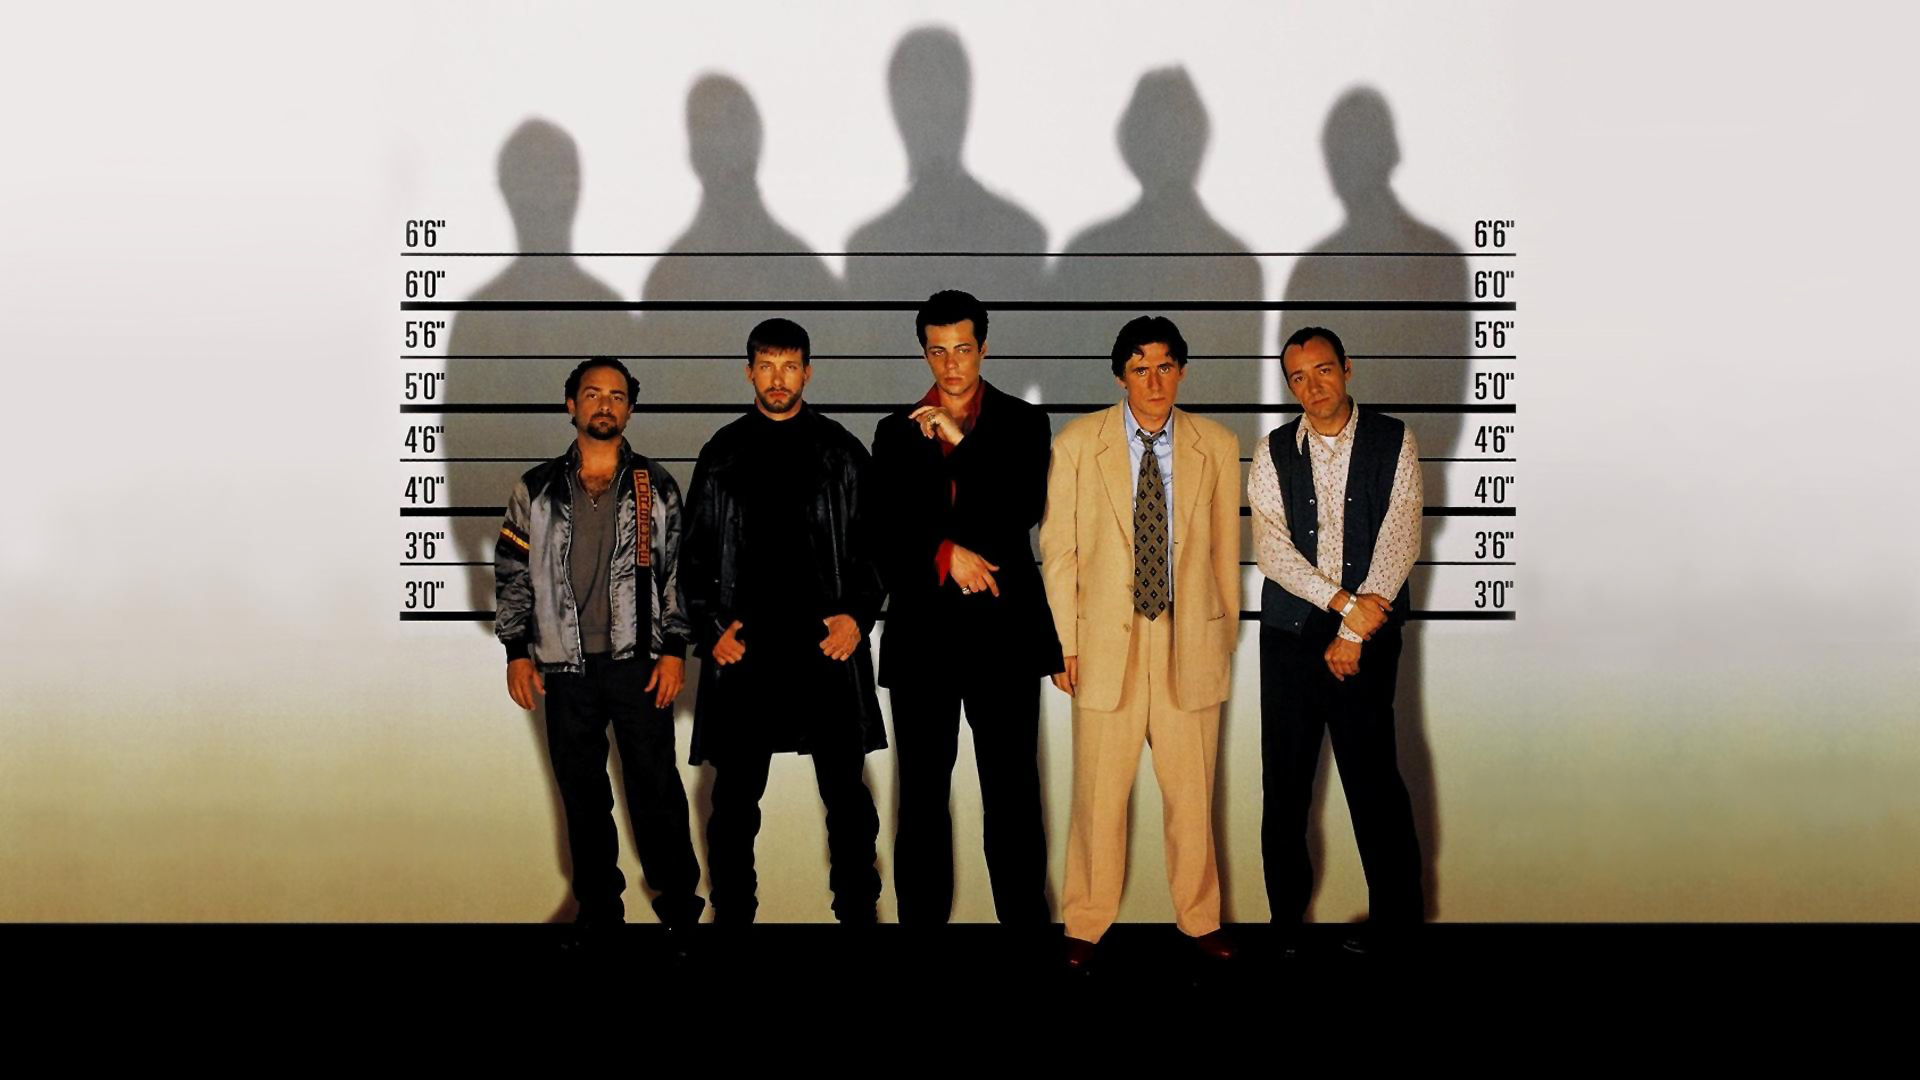 The Usual Suspects Full HD Wallpaper and Background Image ...